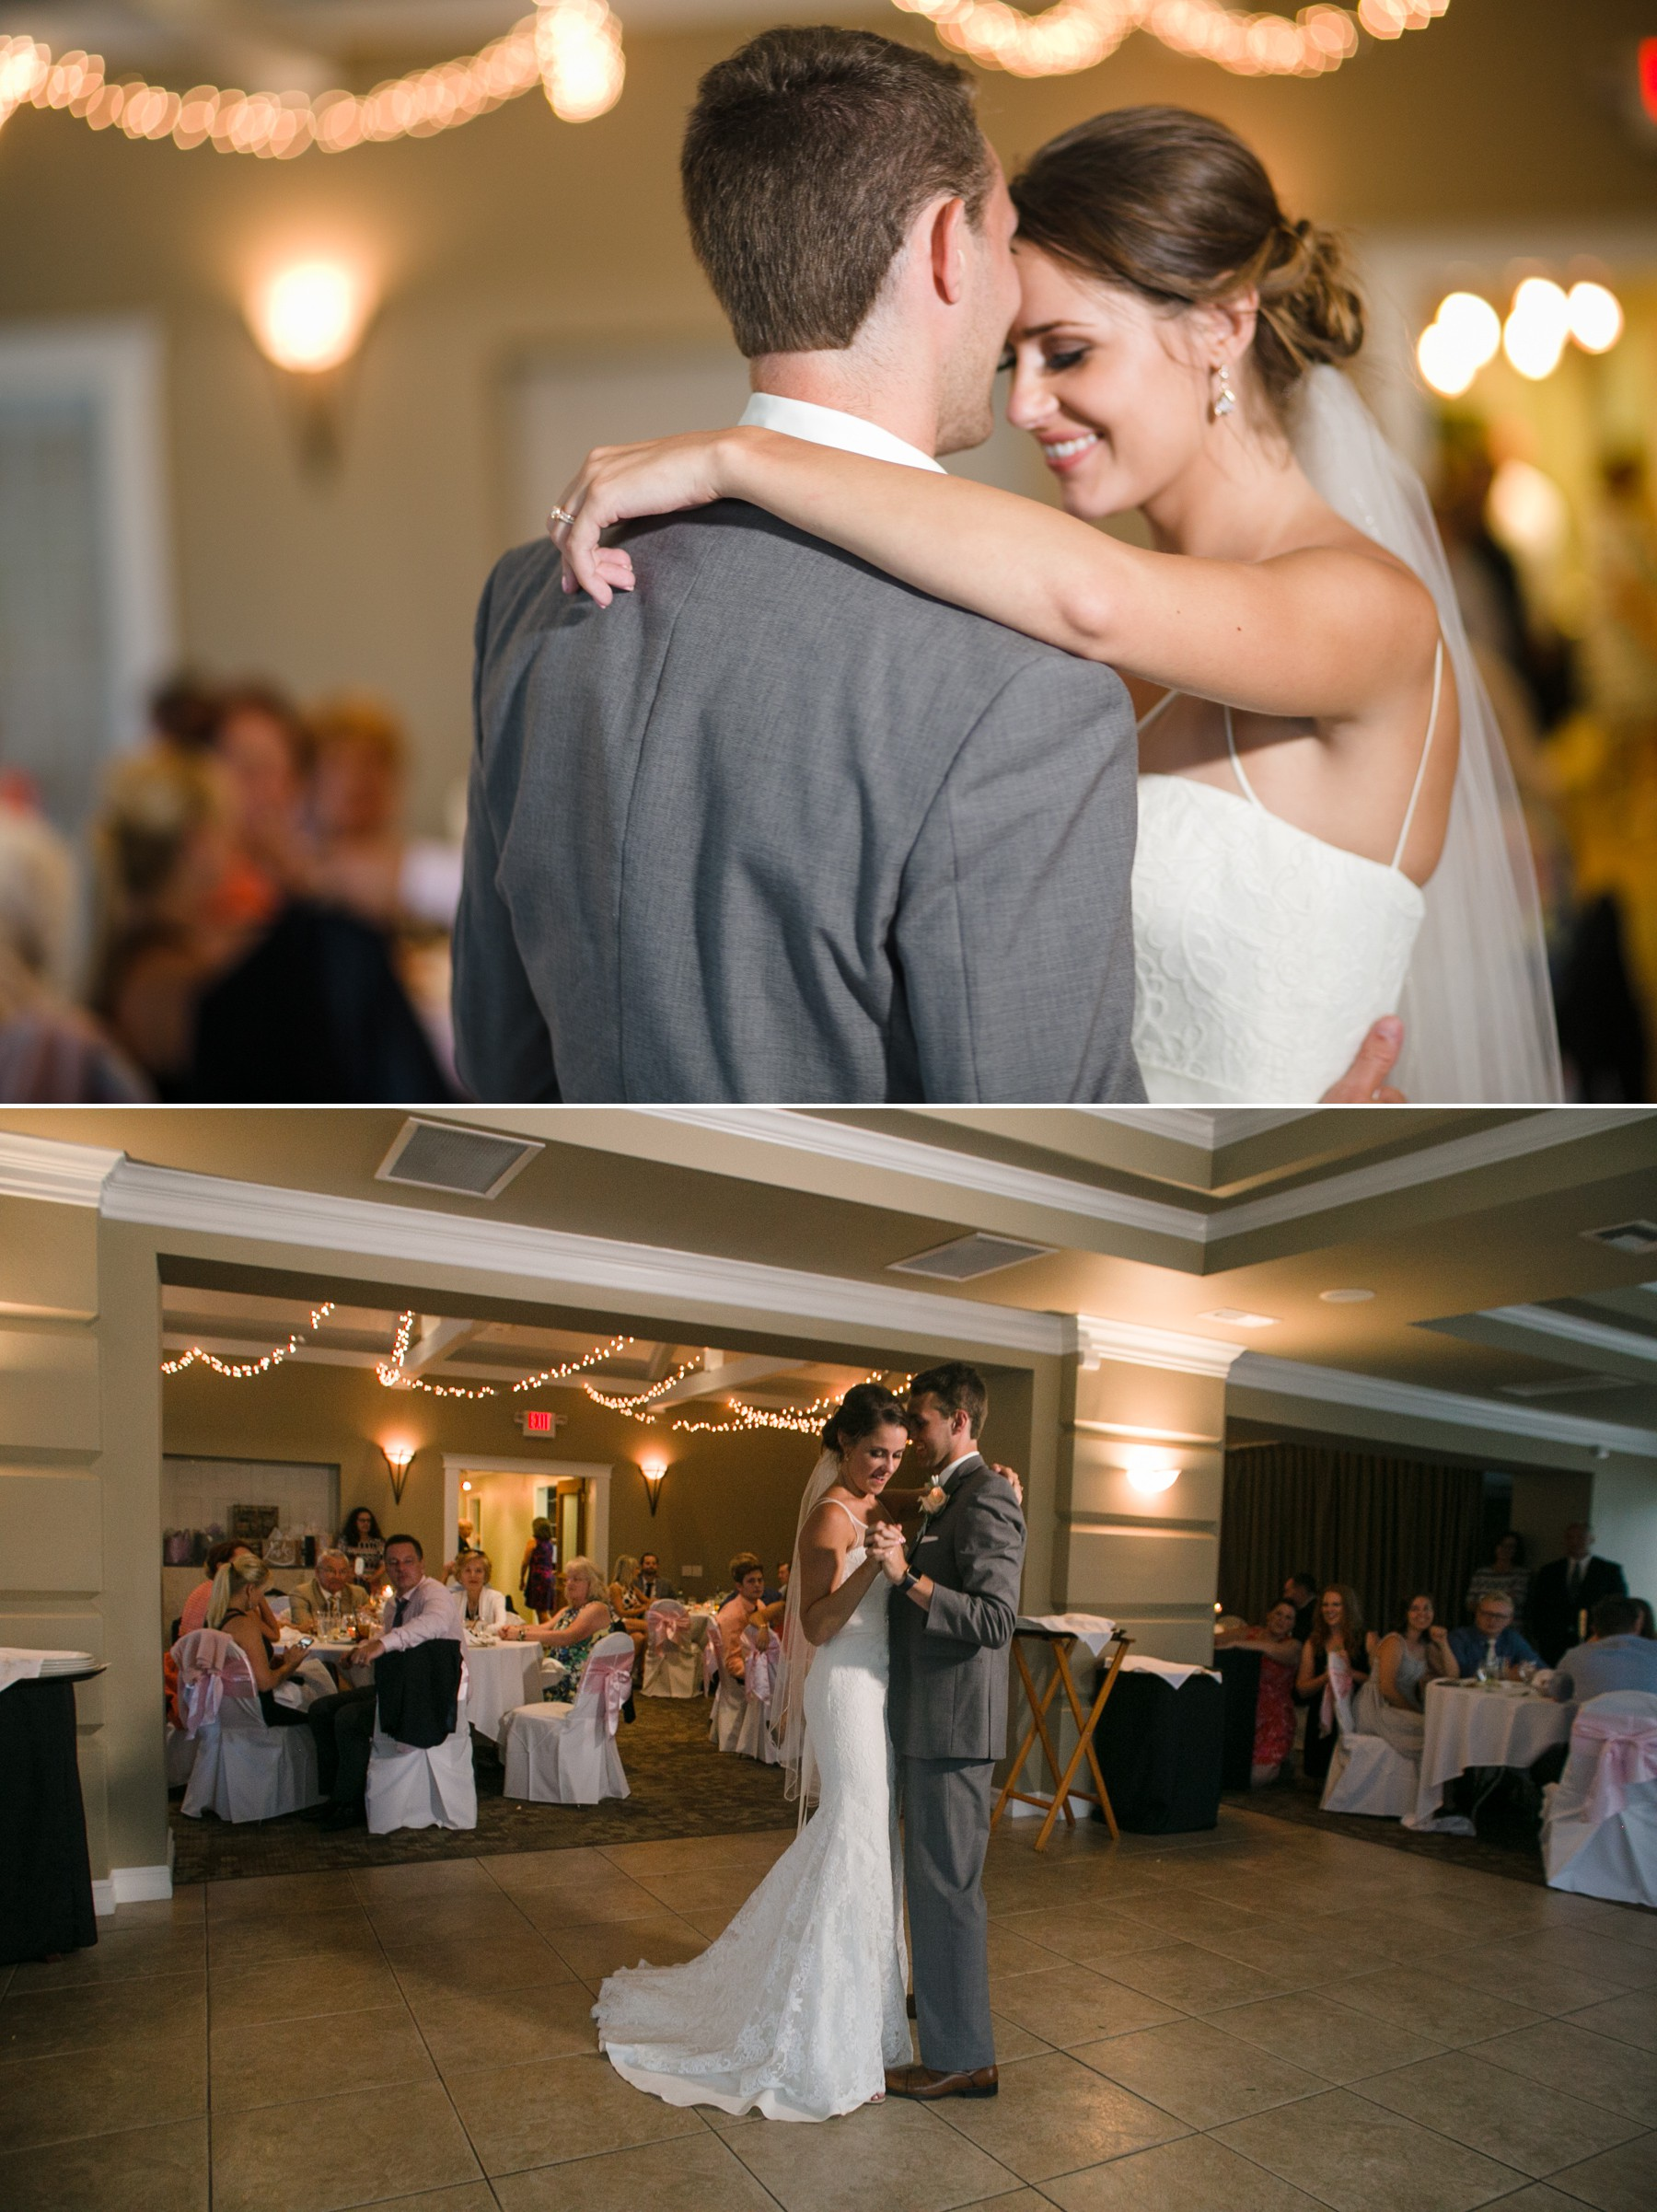 Highland-meadows-wedding-photos 24.jpg